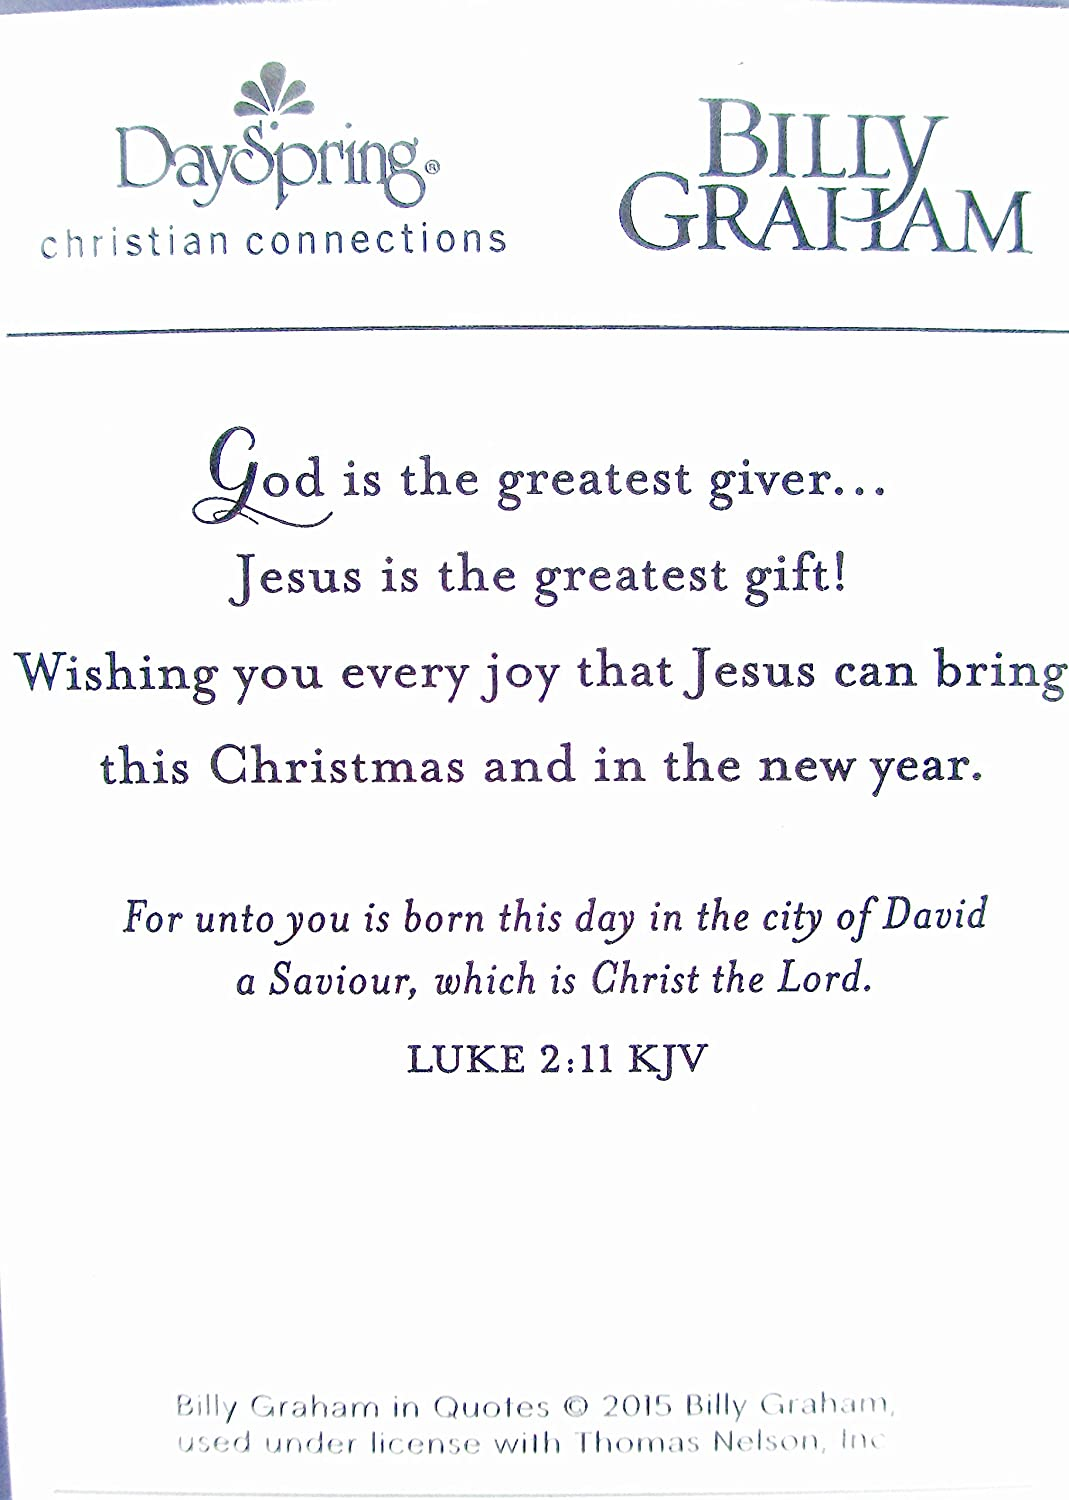 Amazon.com : Christian Christmas Greeting Cards, Bible Quotes, Billy ...